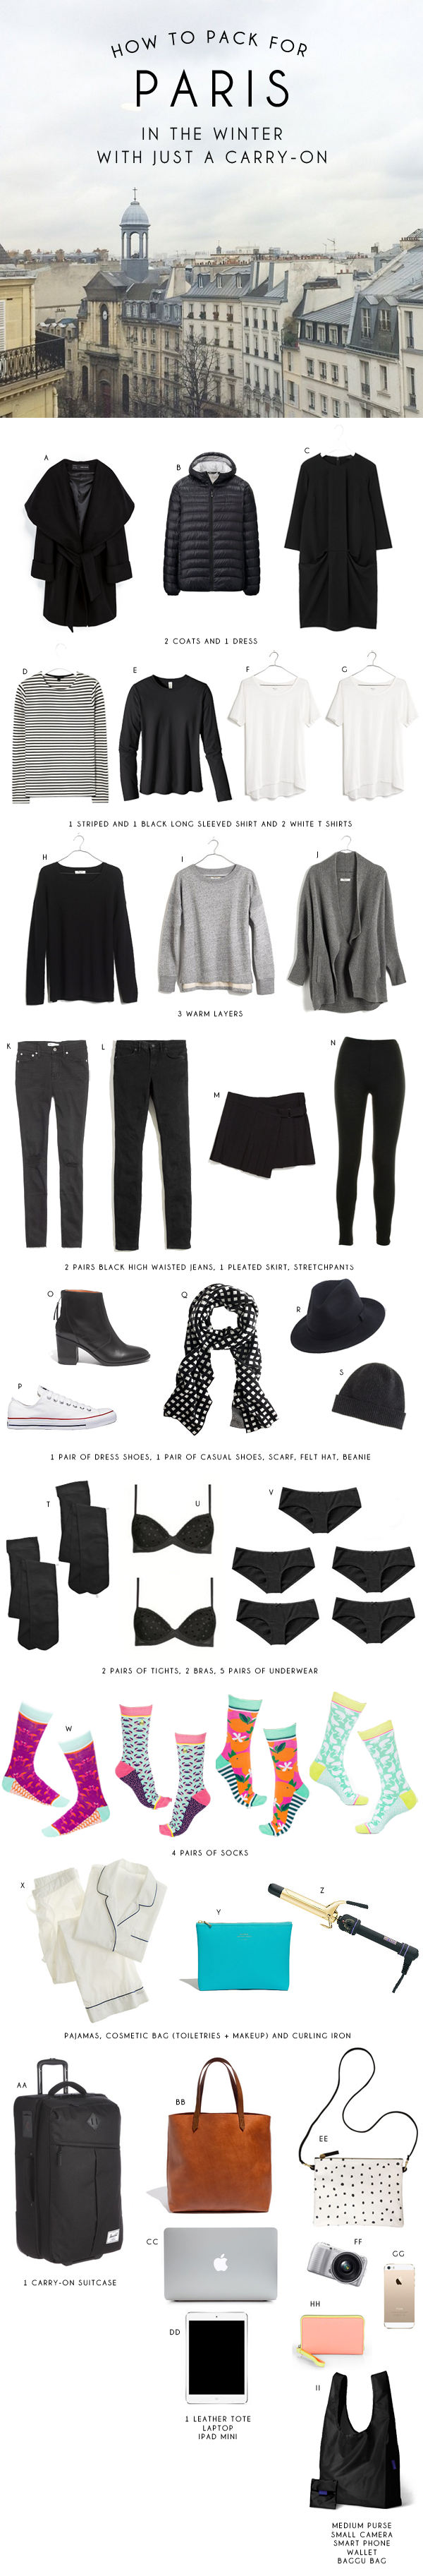 How to Pack for Paris in Just a Carry-On